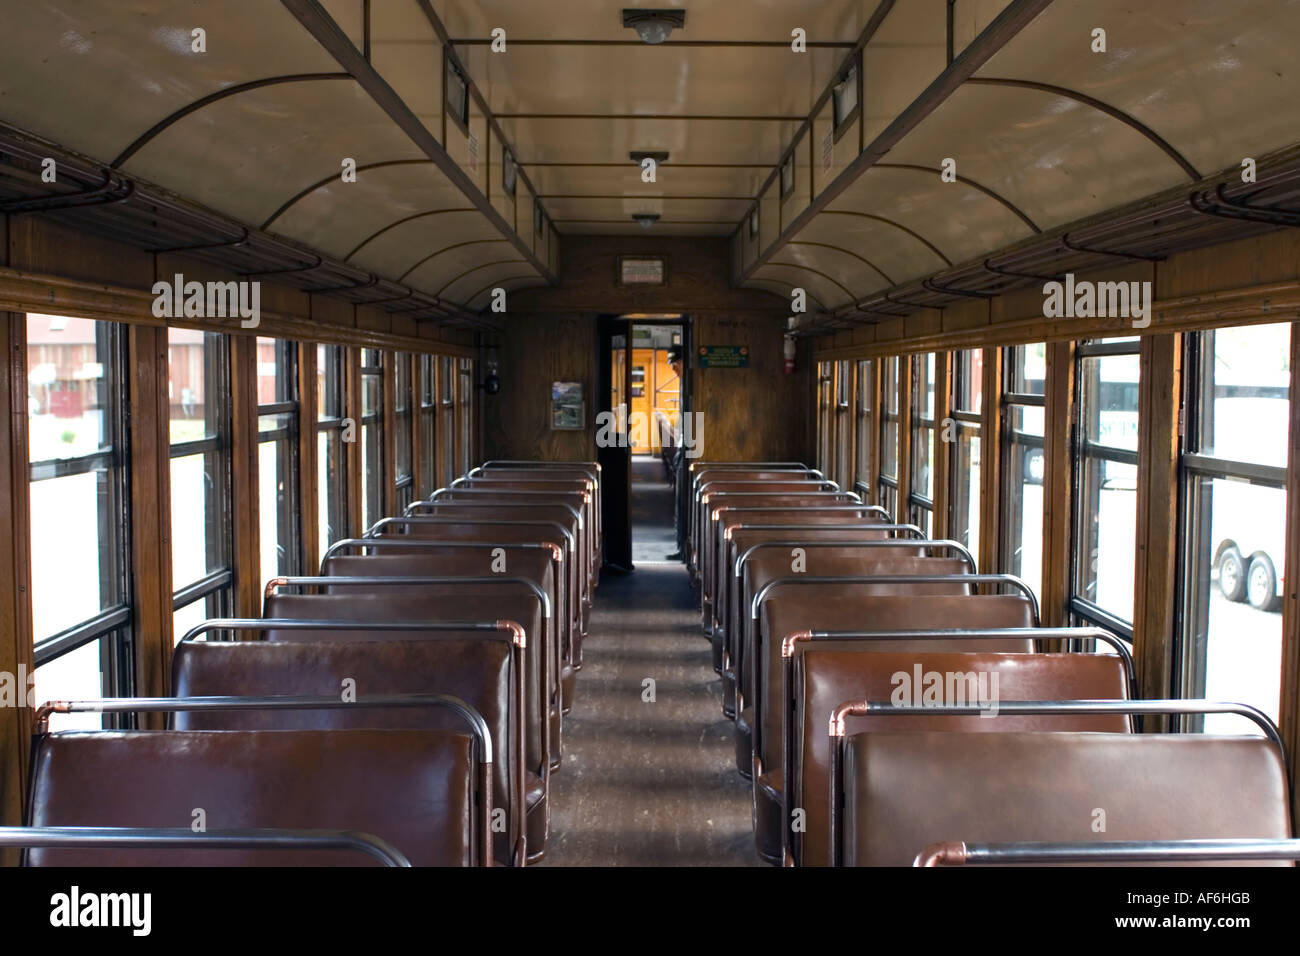 Railroad Passenger Car Inside Old Stock Photos & Railroad ...